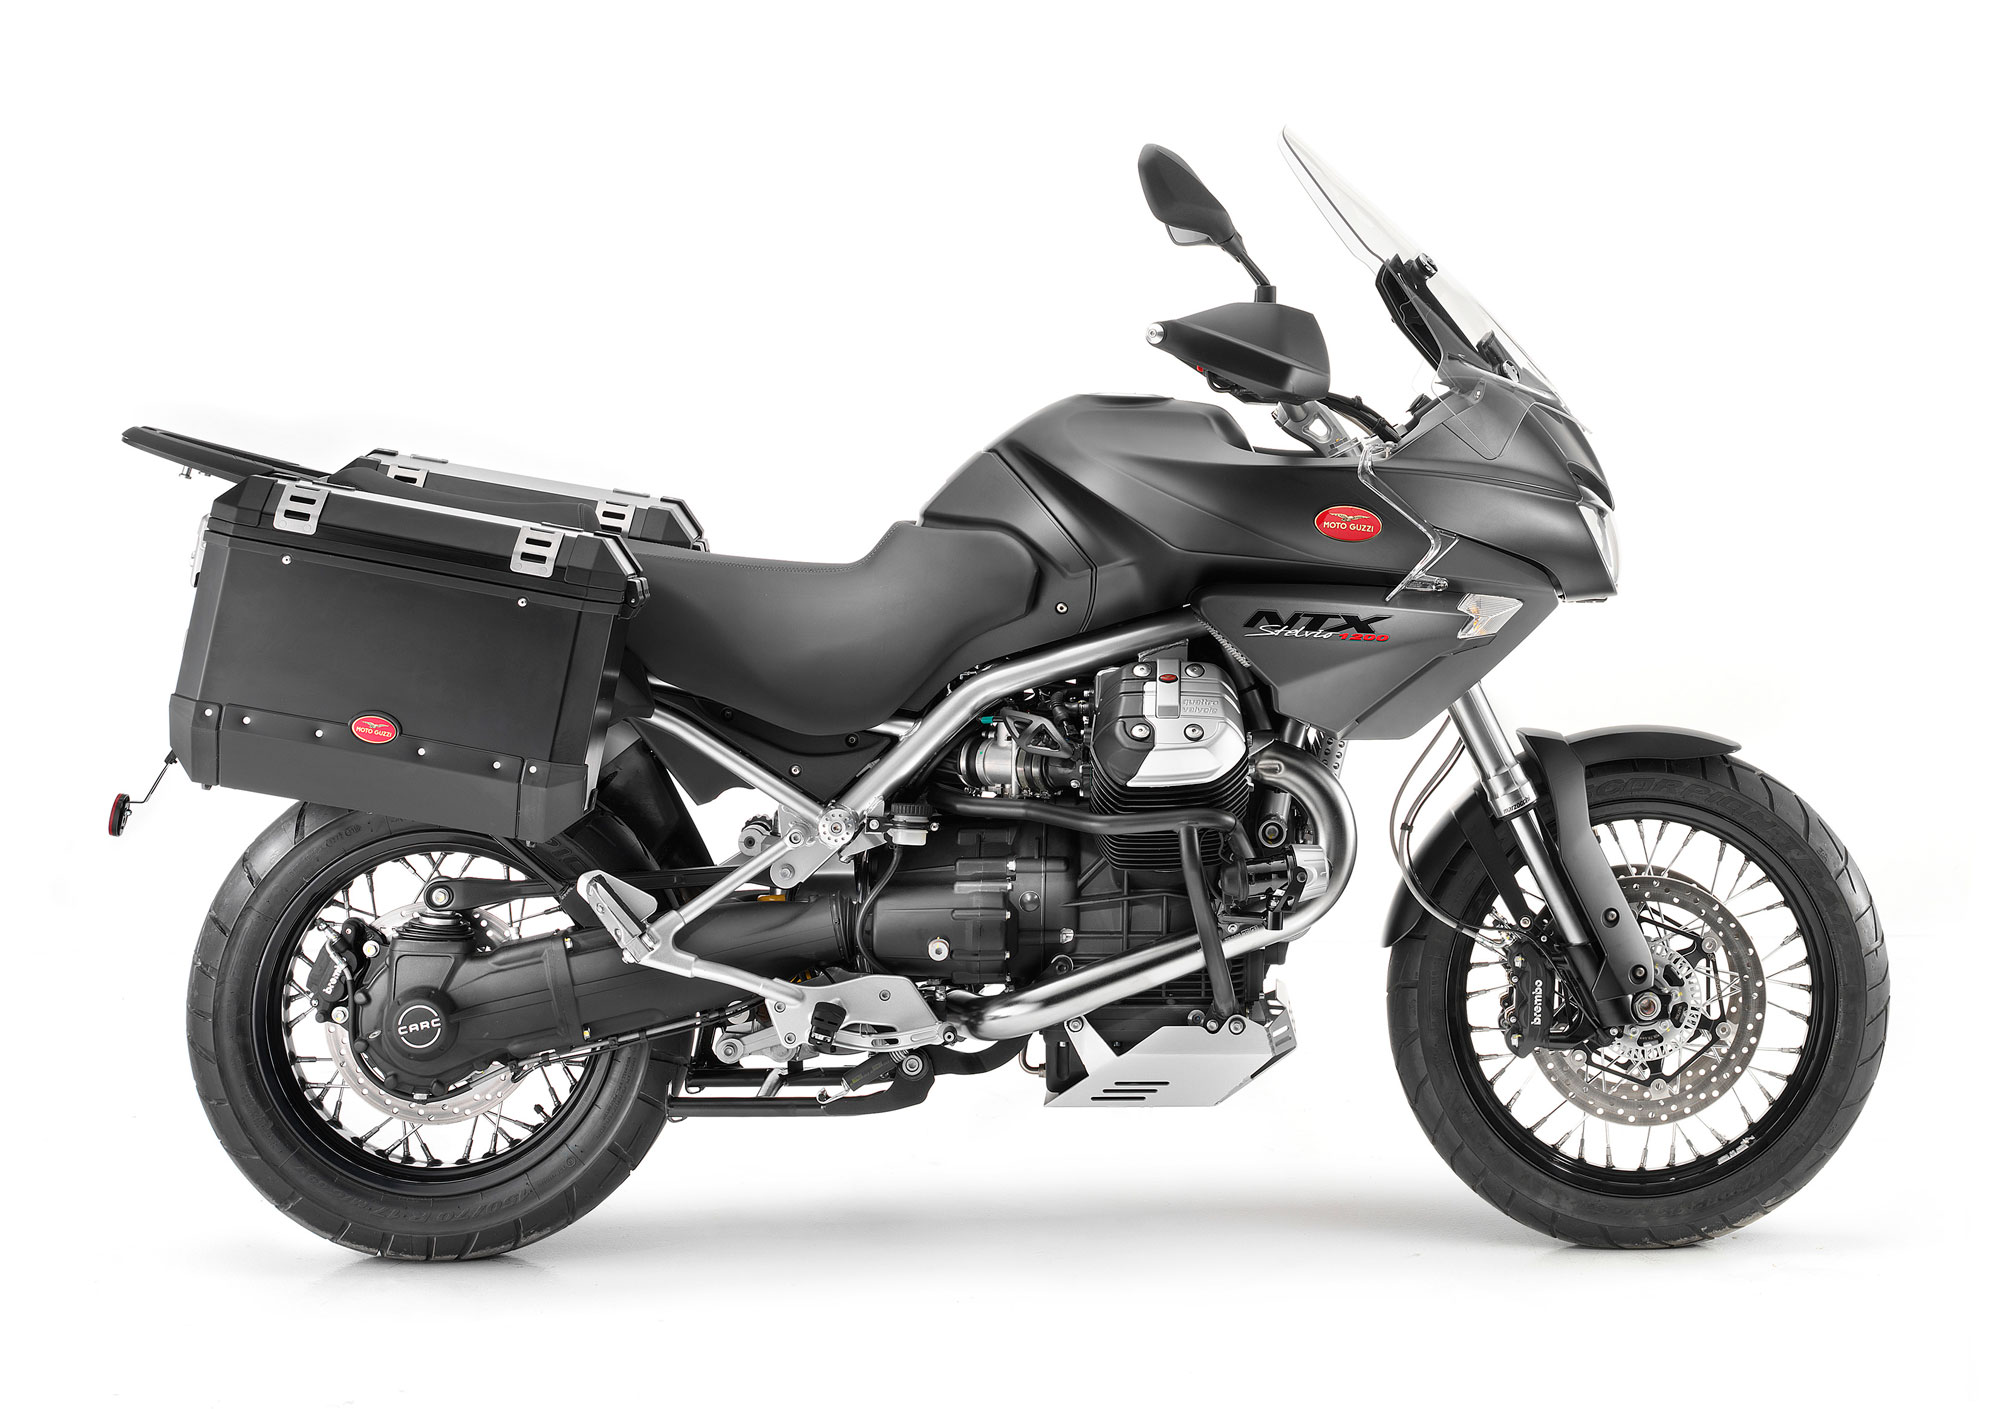 moto guzzi stelvio 1200 ntx specs 2011 2012 autoevolution. Black Bedroom Furniture Sets. Home Design Ideas